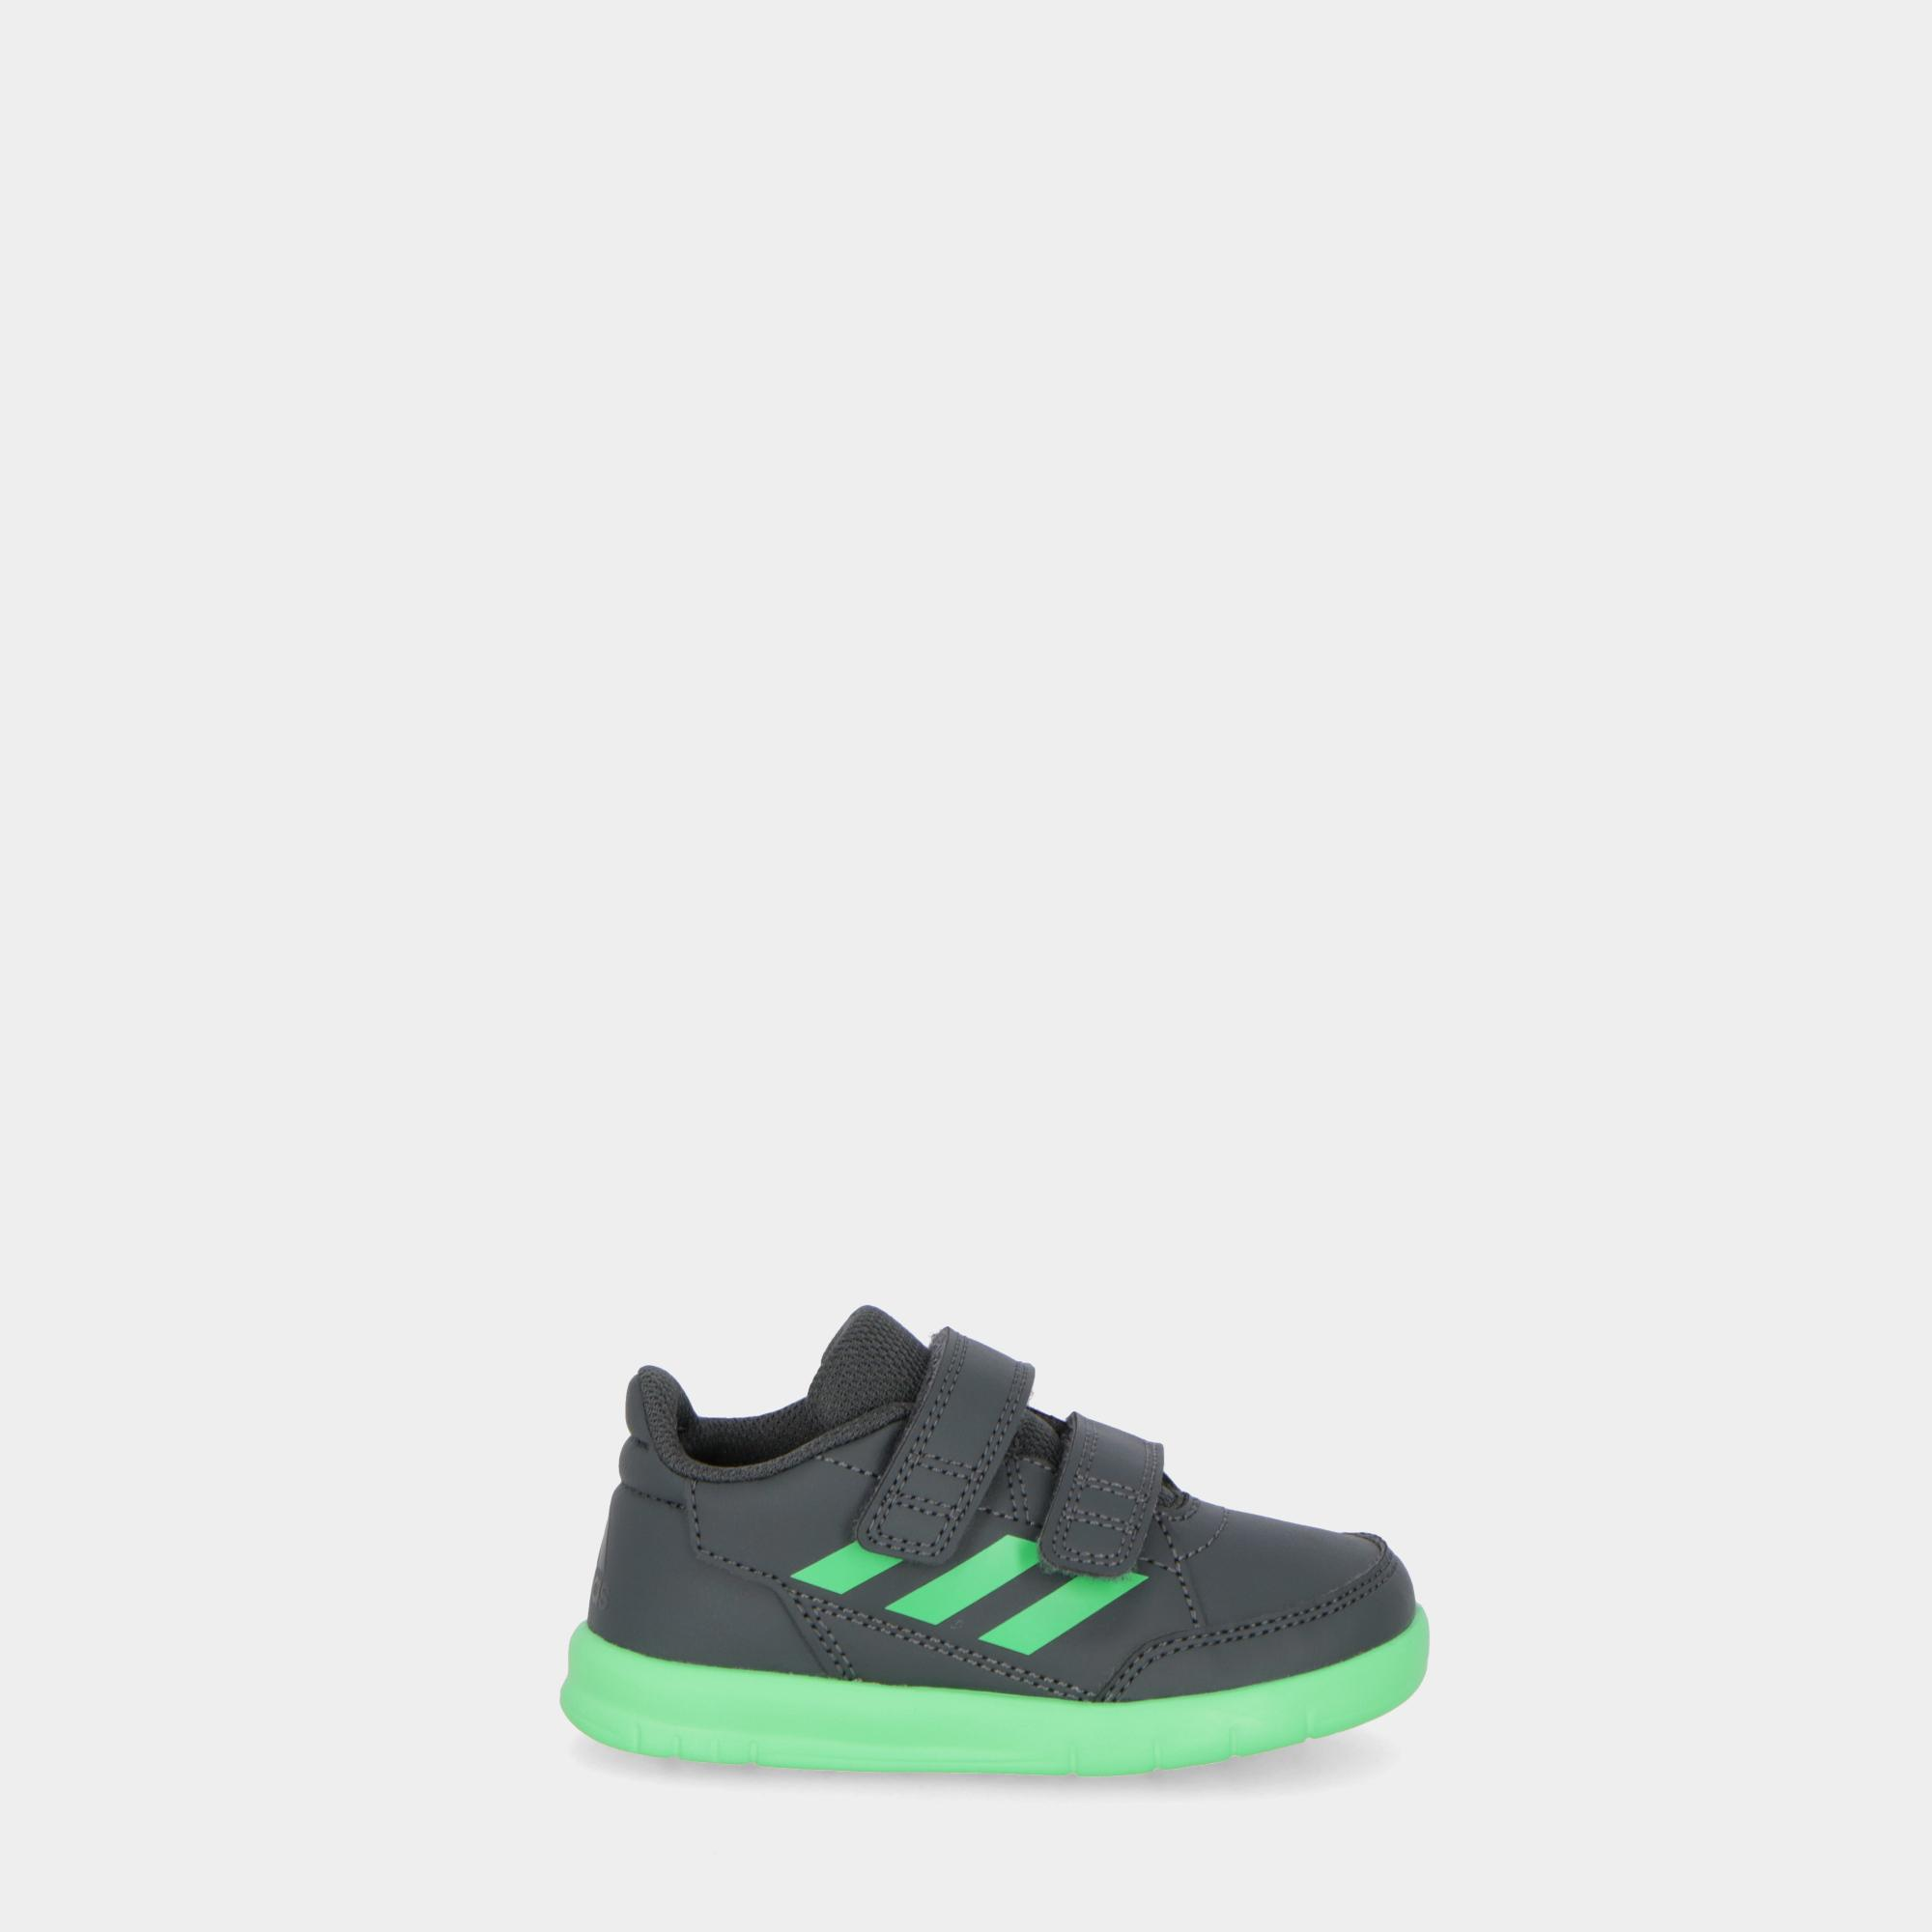 low priced baff4 6ba22 Adidas Altasport Cf I - Kids Grey lime white